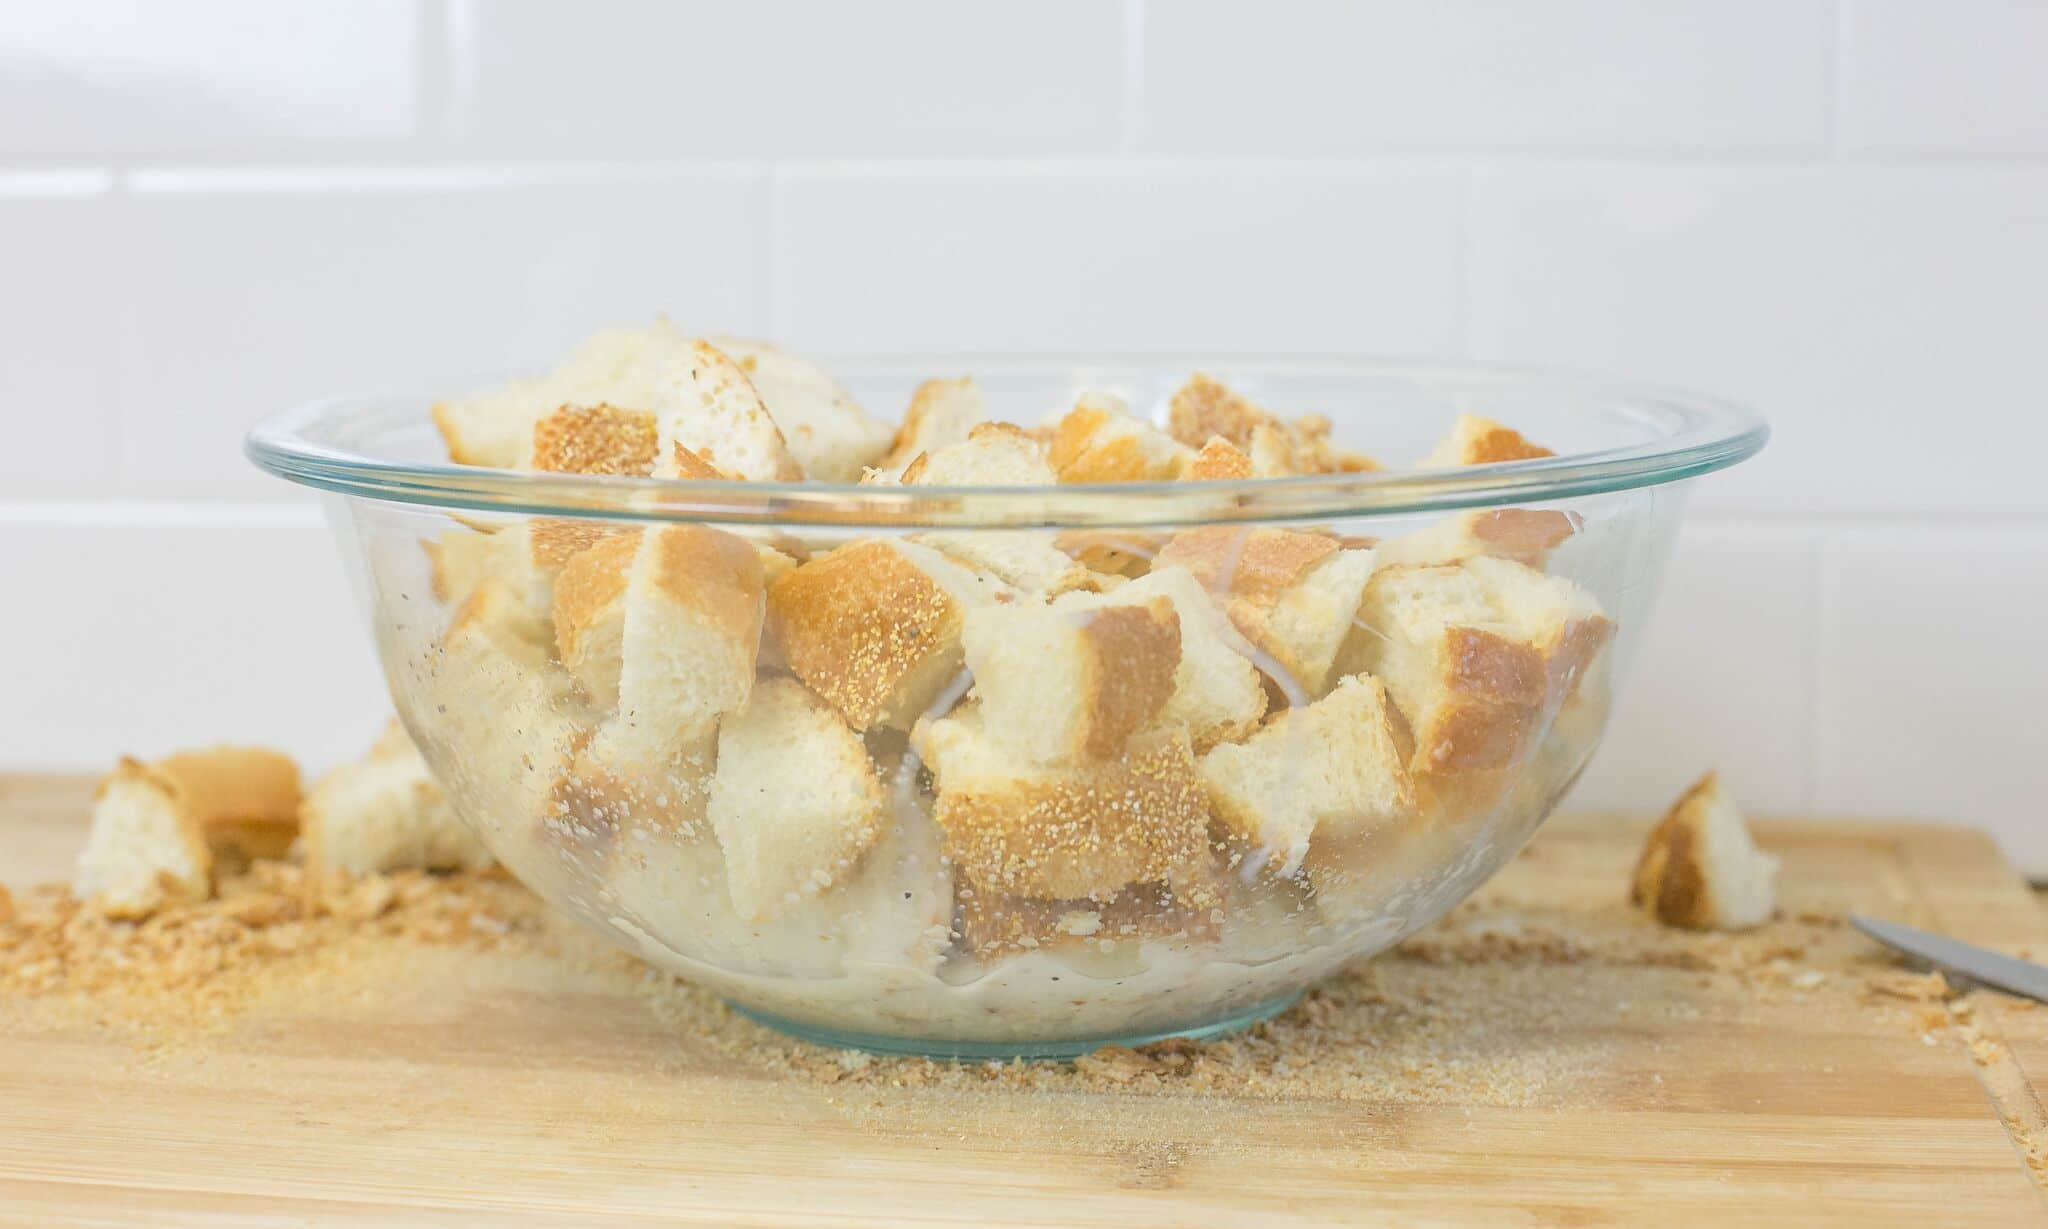 Cube bread; and add to bowl of milk seasoned with salt and pepper.